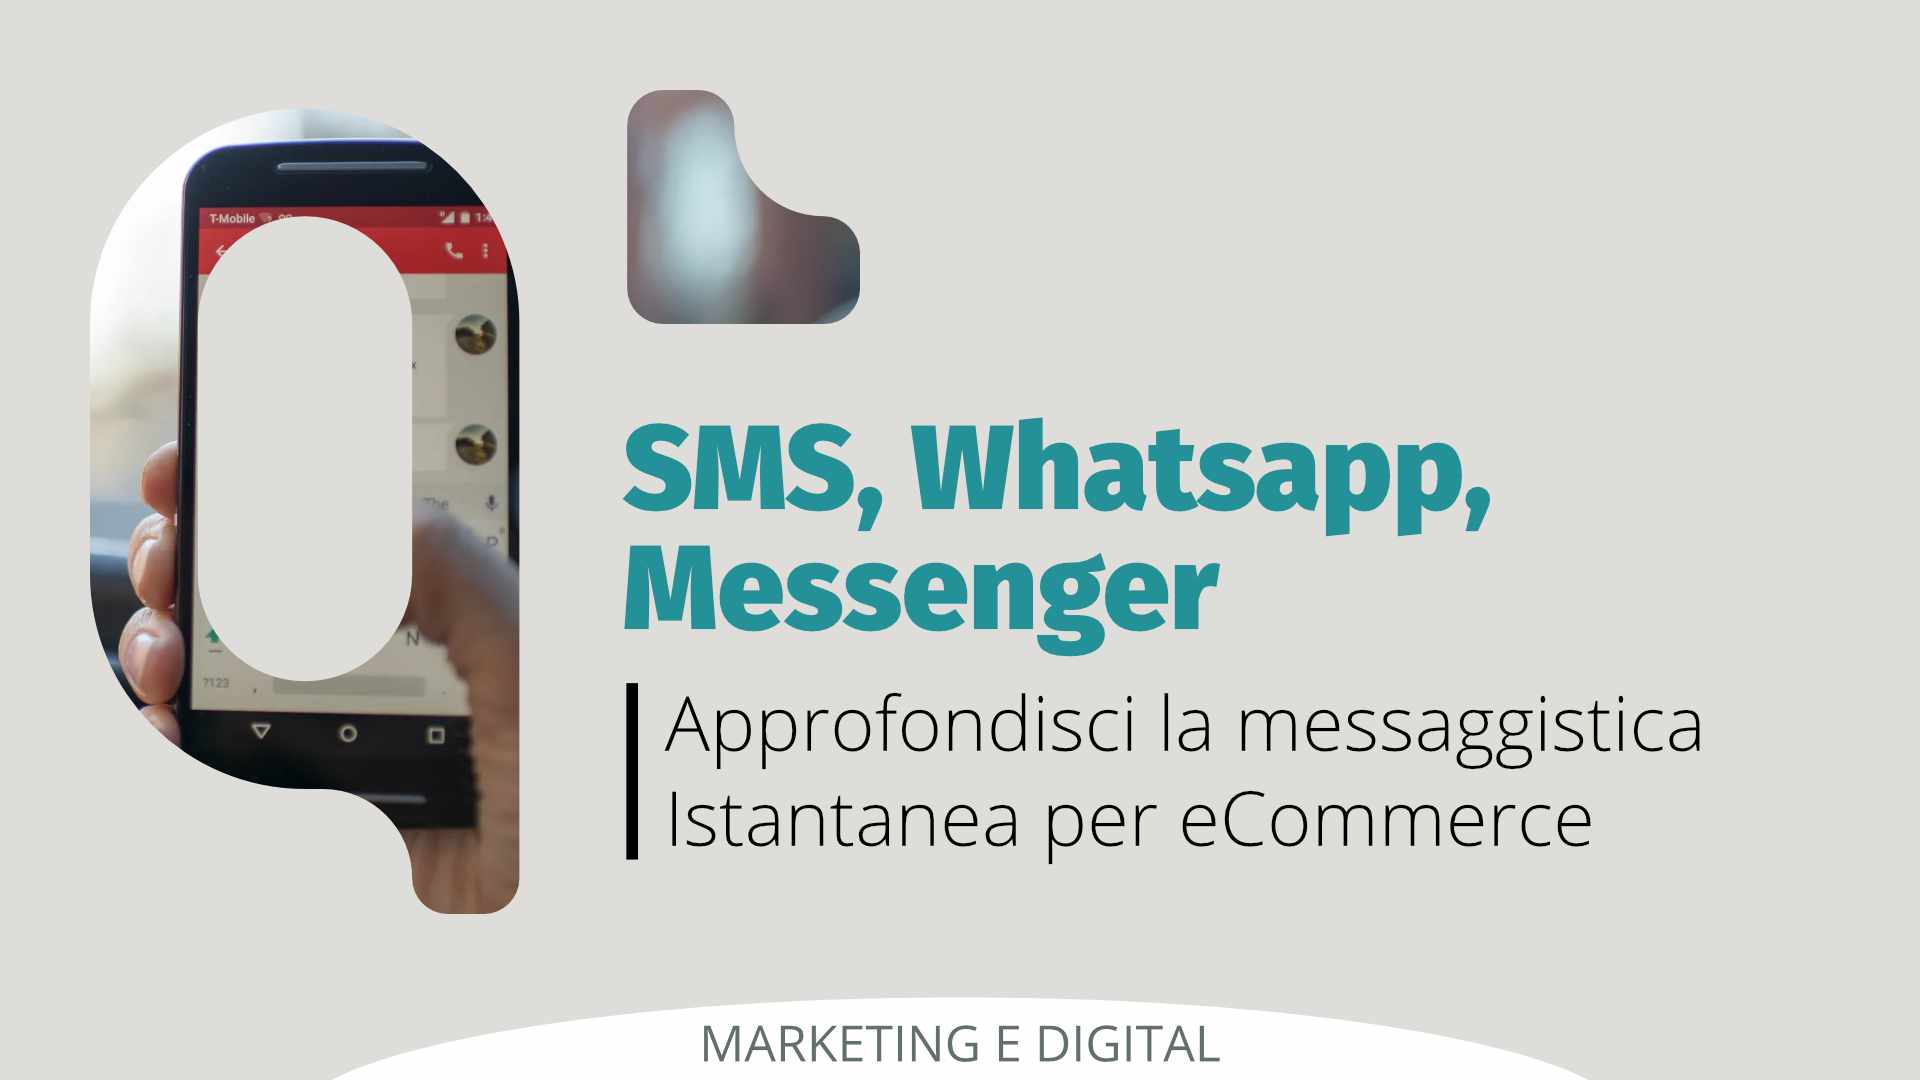 Messaggistica Istantanea per eCommerce: SMS, Whatsapp e Messenger